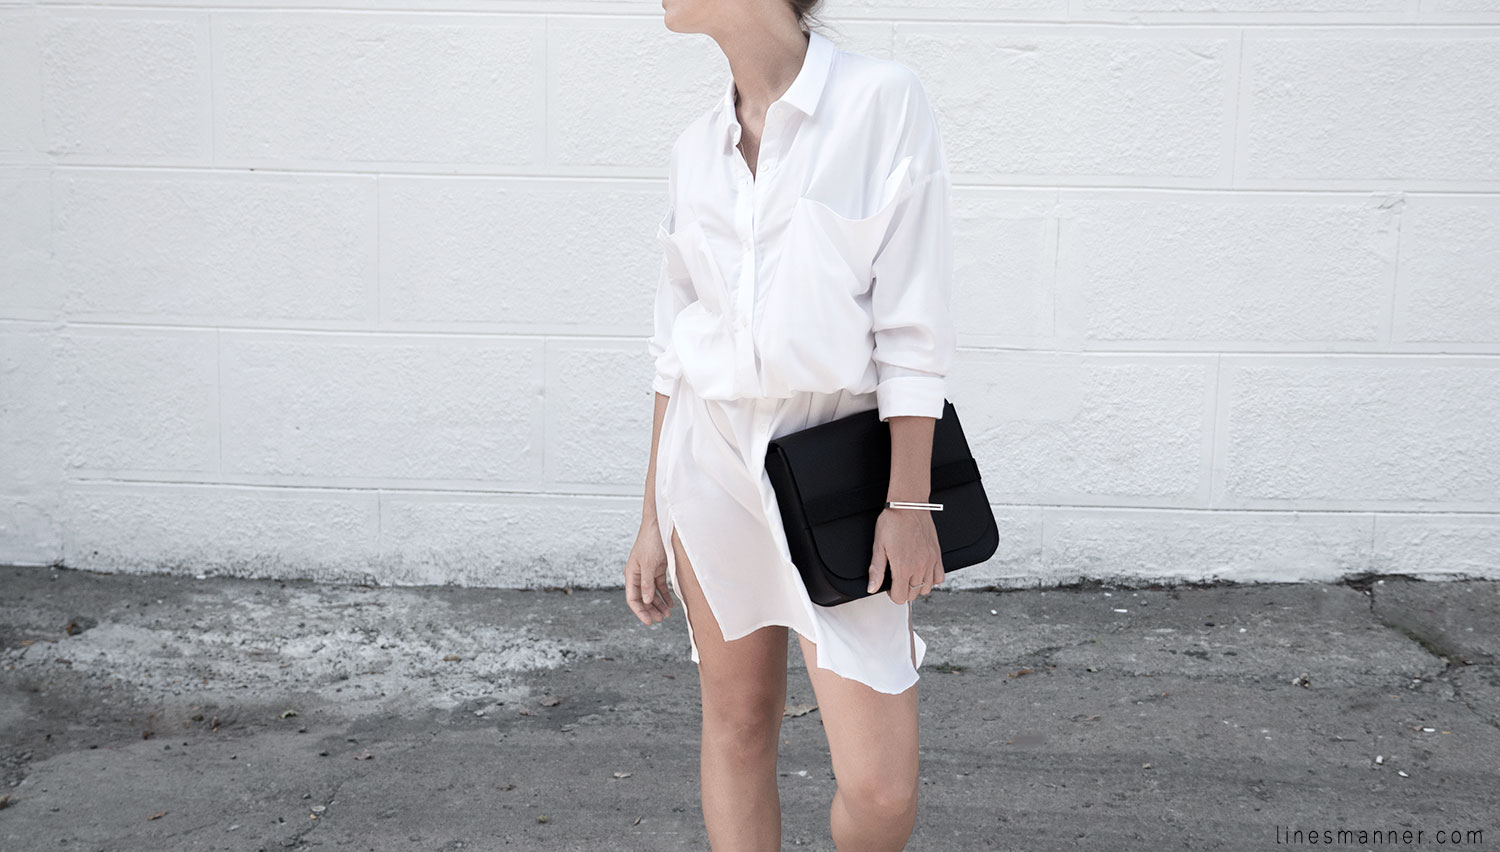 Lines-Manner-Whiteout-Fashion-Minimal-Clean-Fresh-Brigthly-All_White-Monochrome-Immaculate-Trend-Style-Sleek-Slouchy-Details-White_Shirt-Transeasonal-Dressing-Outfit-4